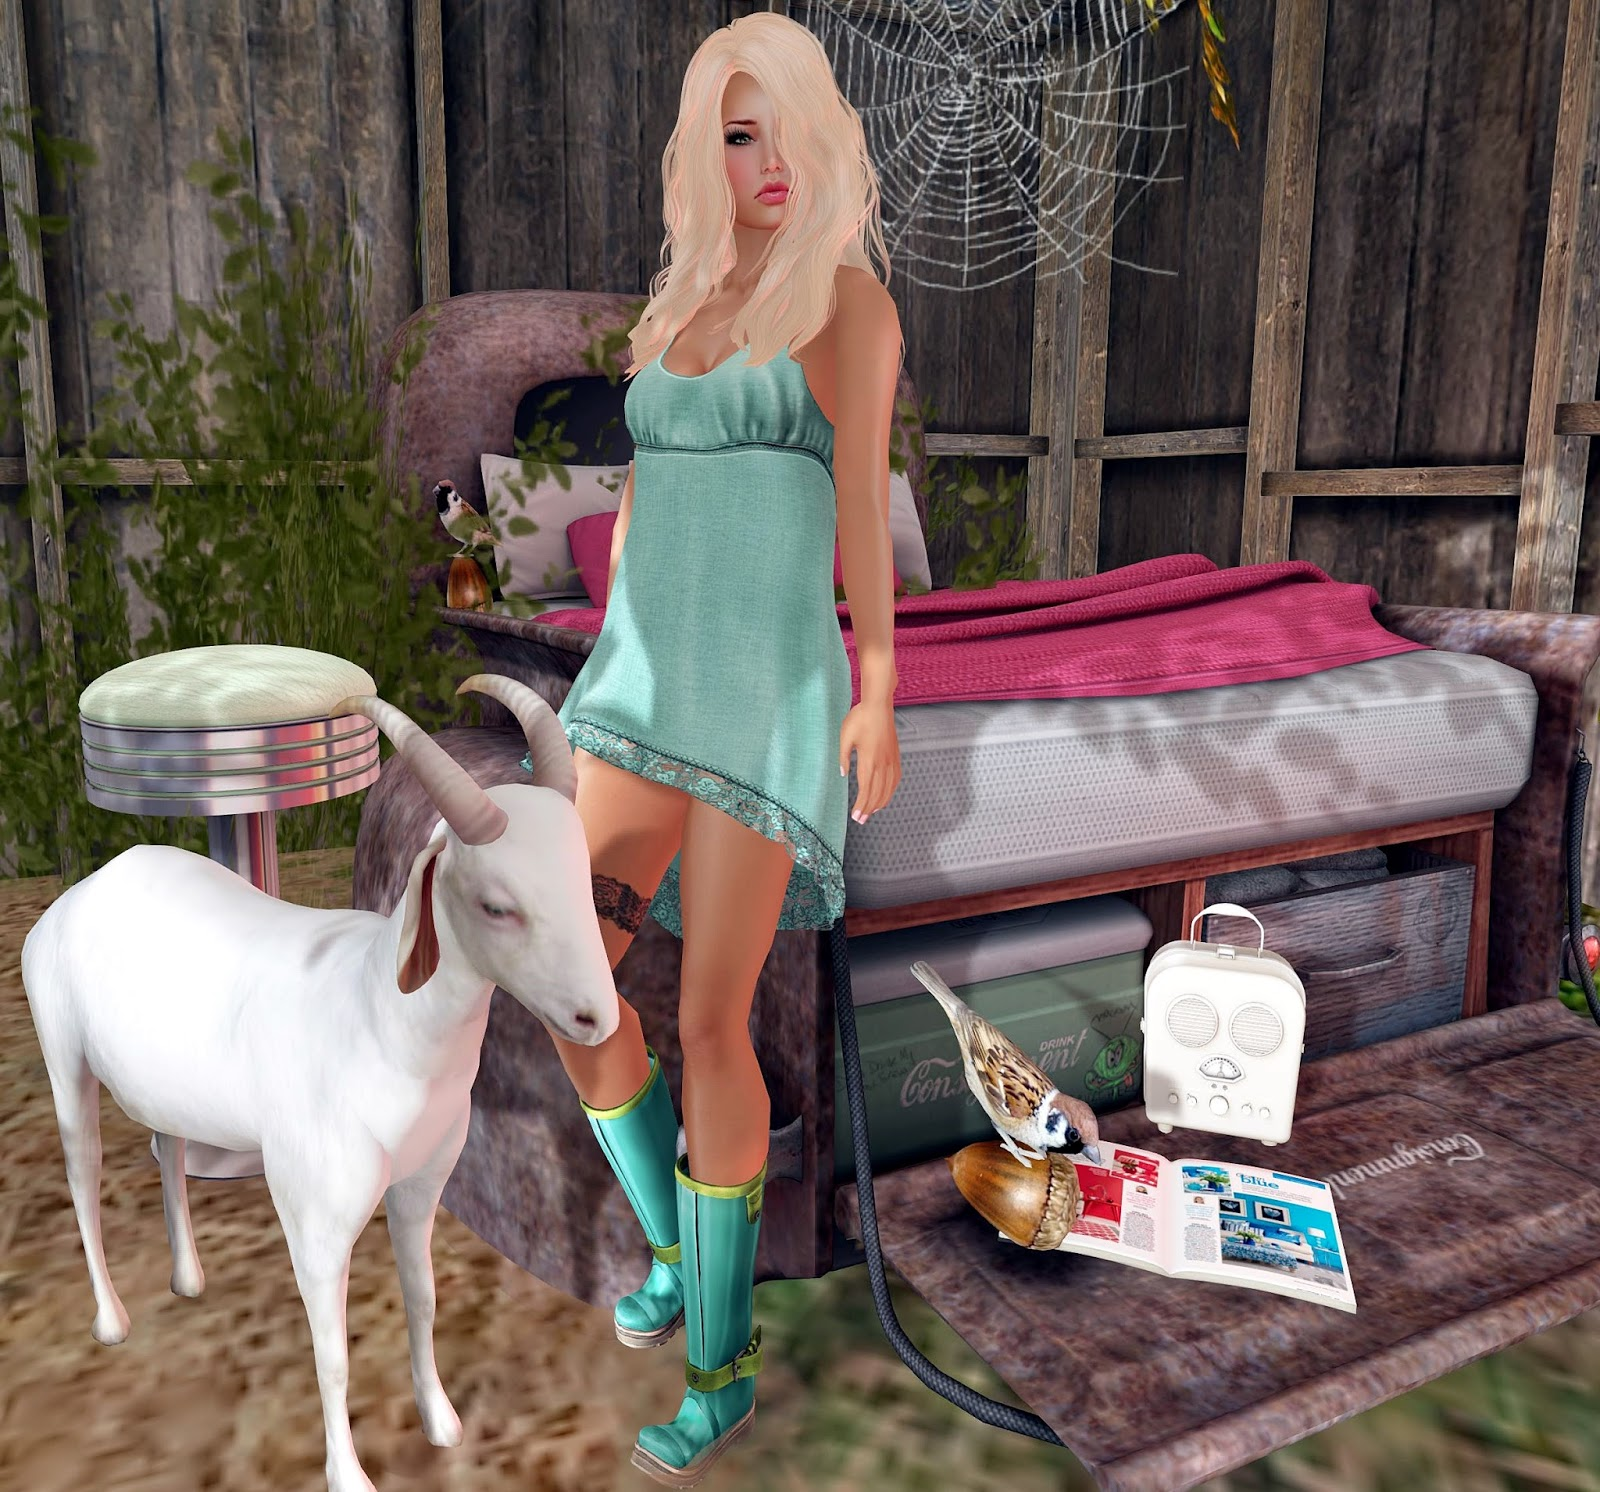 ᑭi᙭ᕮᒪ Styᒪᕮs Blond Barn Babe Inkie